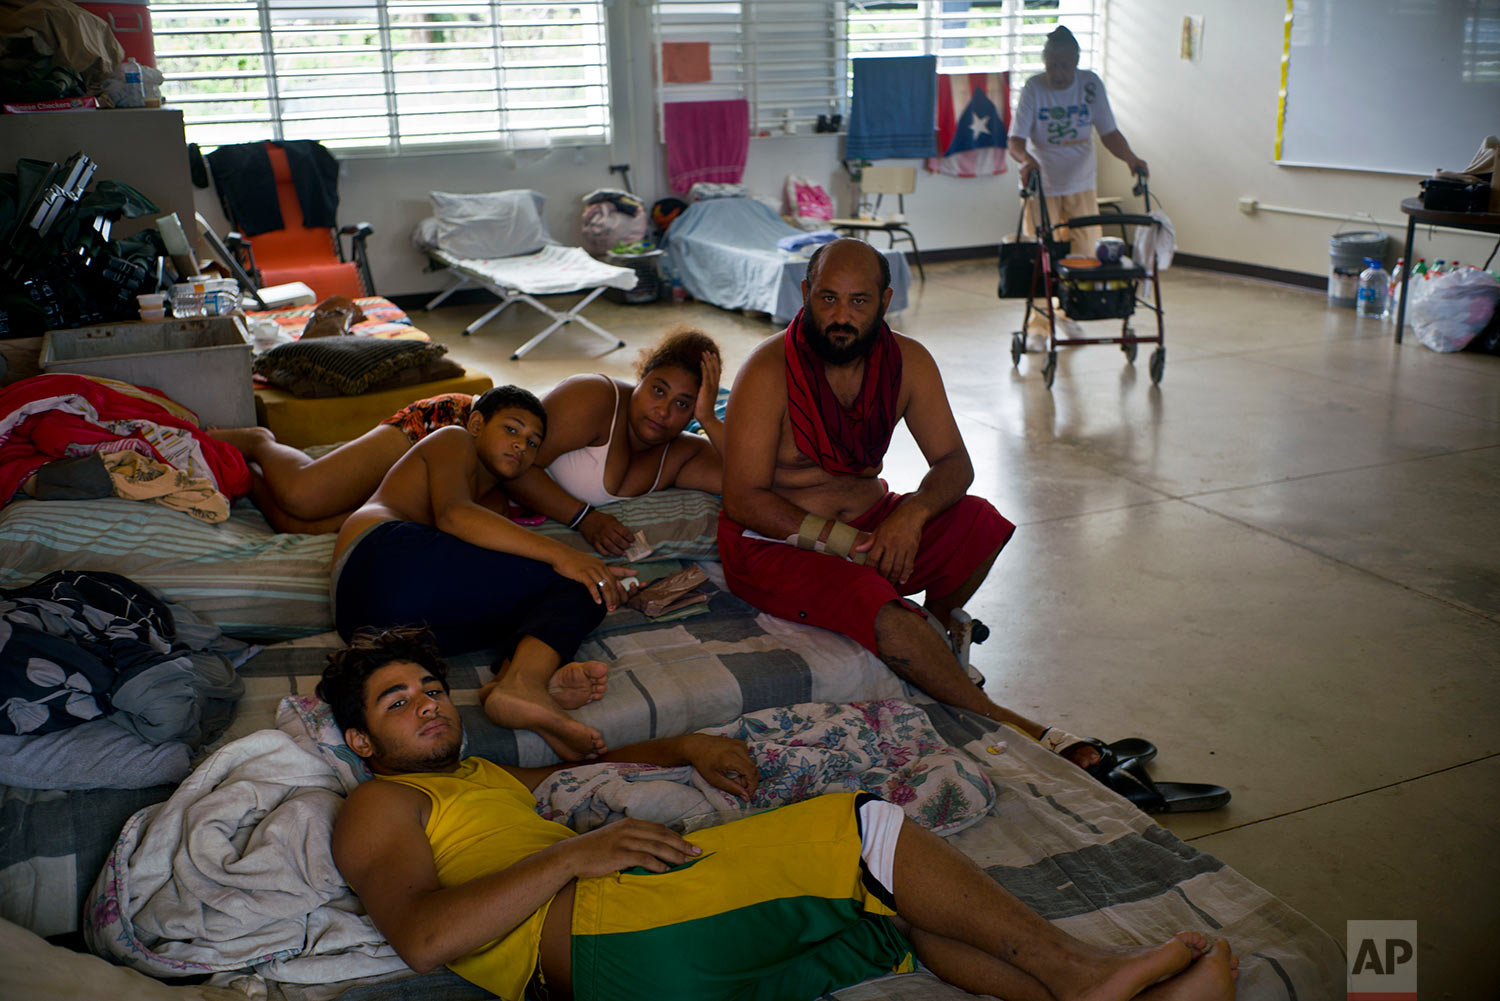 In this Saturday, Oct. 14, 2017 photo, Arturo de Jesus Melendez, center, sits with his wife Madeli and their children Alexis and Arturo on their mattresses inside a classroom at a school-turned-shelter after they were left homeless by Hurricane Maria in Toa Baja, Puerto Rico. (AP Photo/Ramon Espinosa)